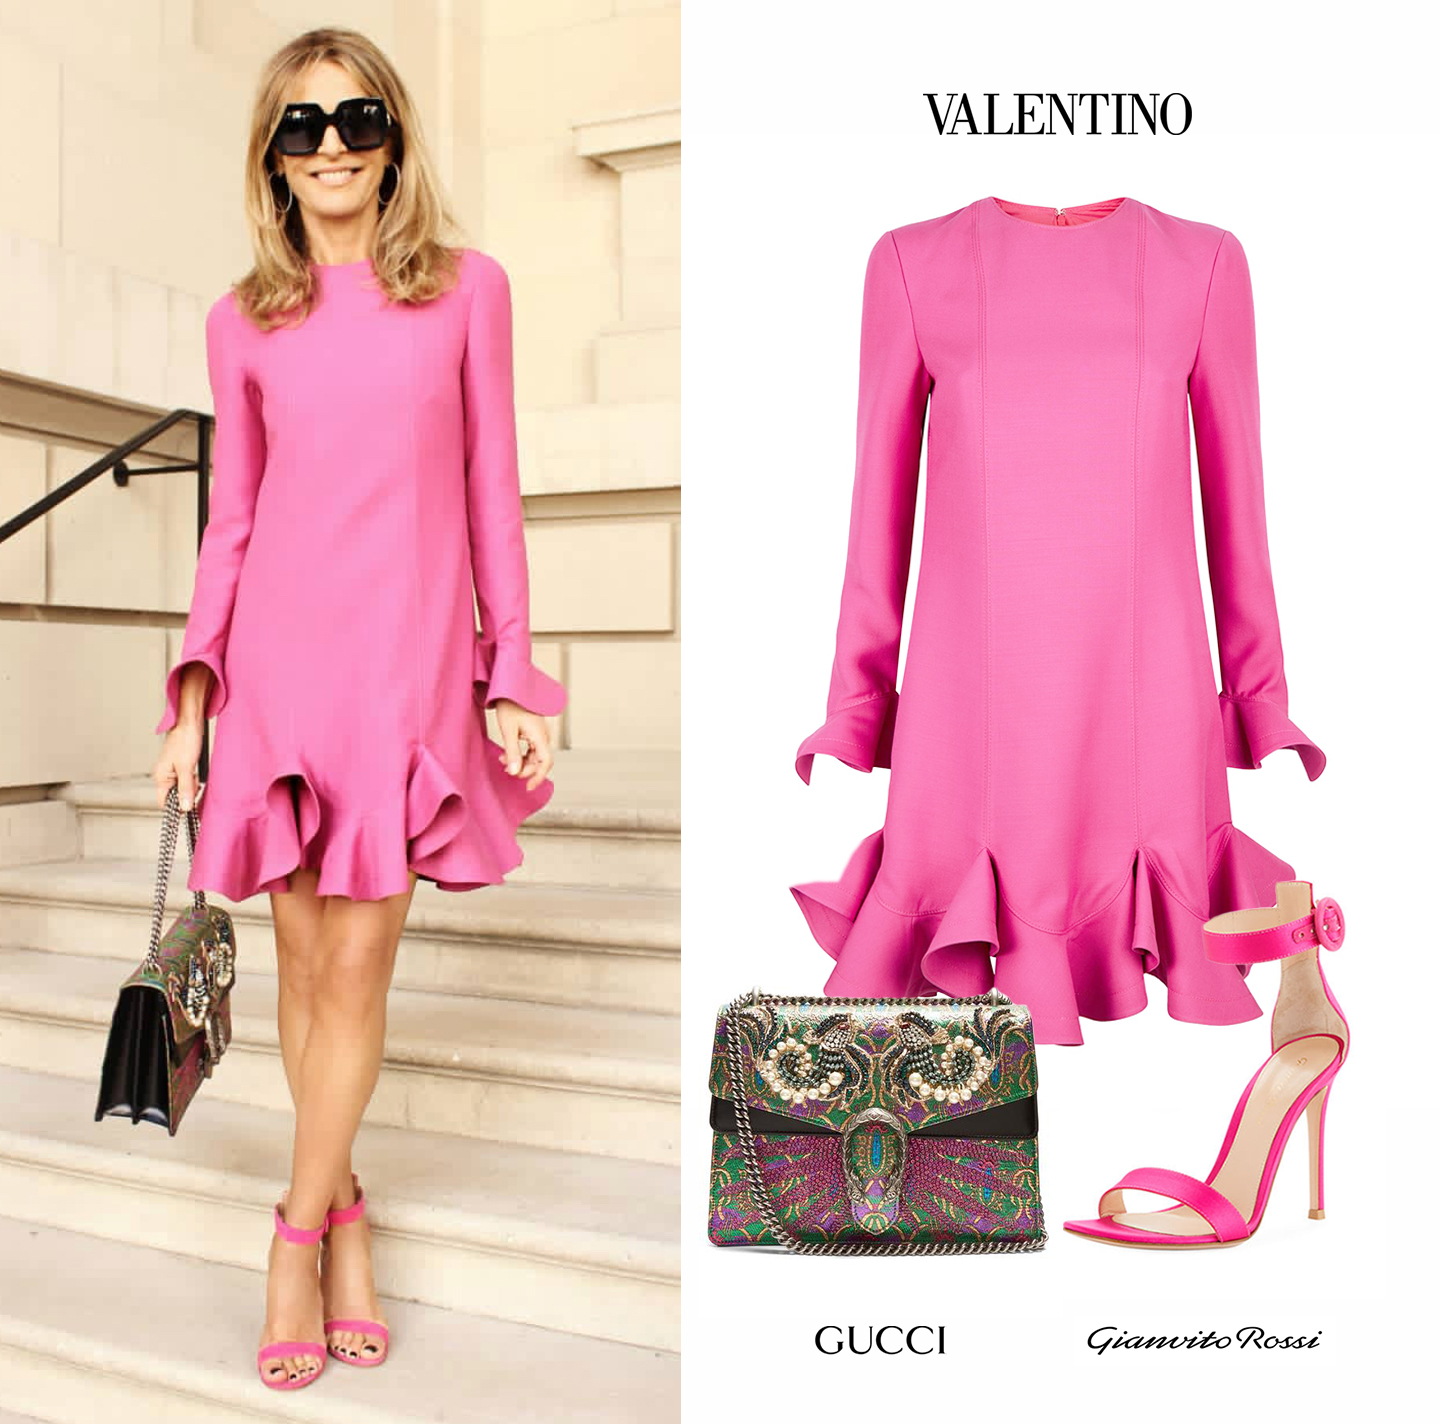 Rossella_Della_Giovampaola_Valentino_Ruffle_Pink_Dress_Gianvito_Rossi_Portofino_Sandals_Gucci_Supreme_GG_Embroidered_Bag.jpg